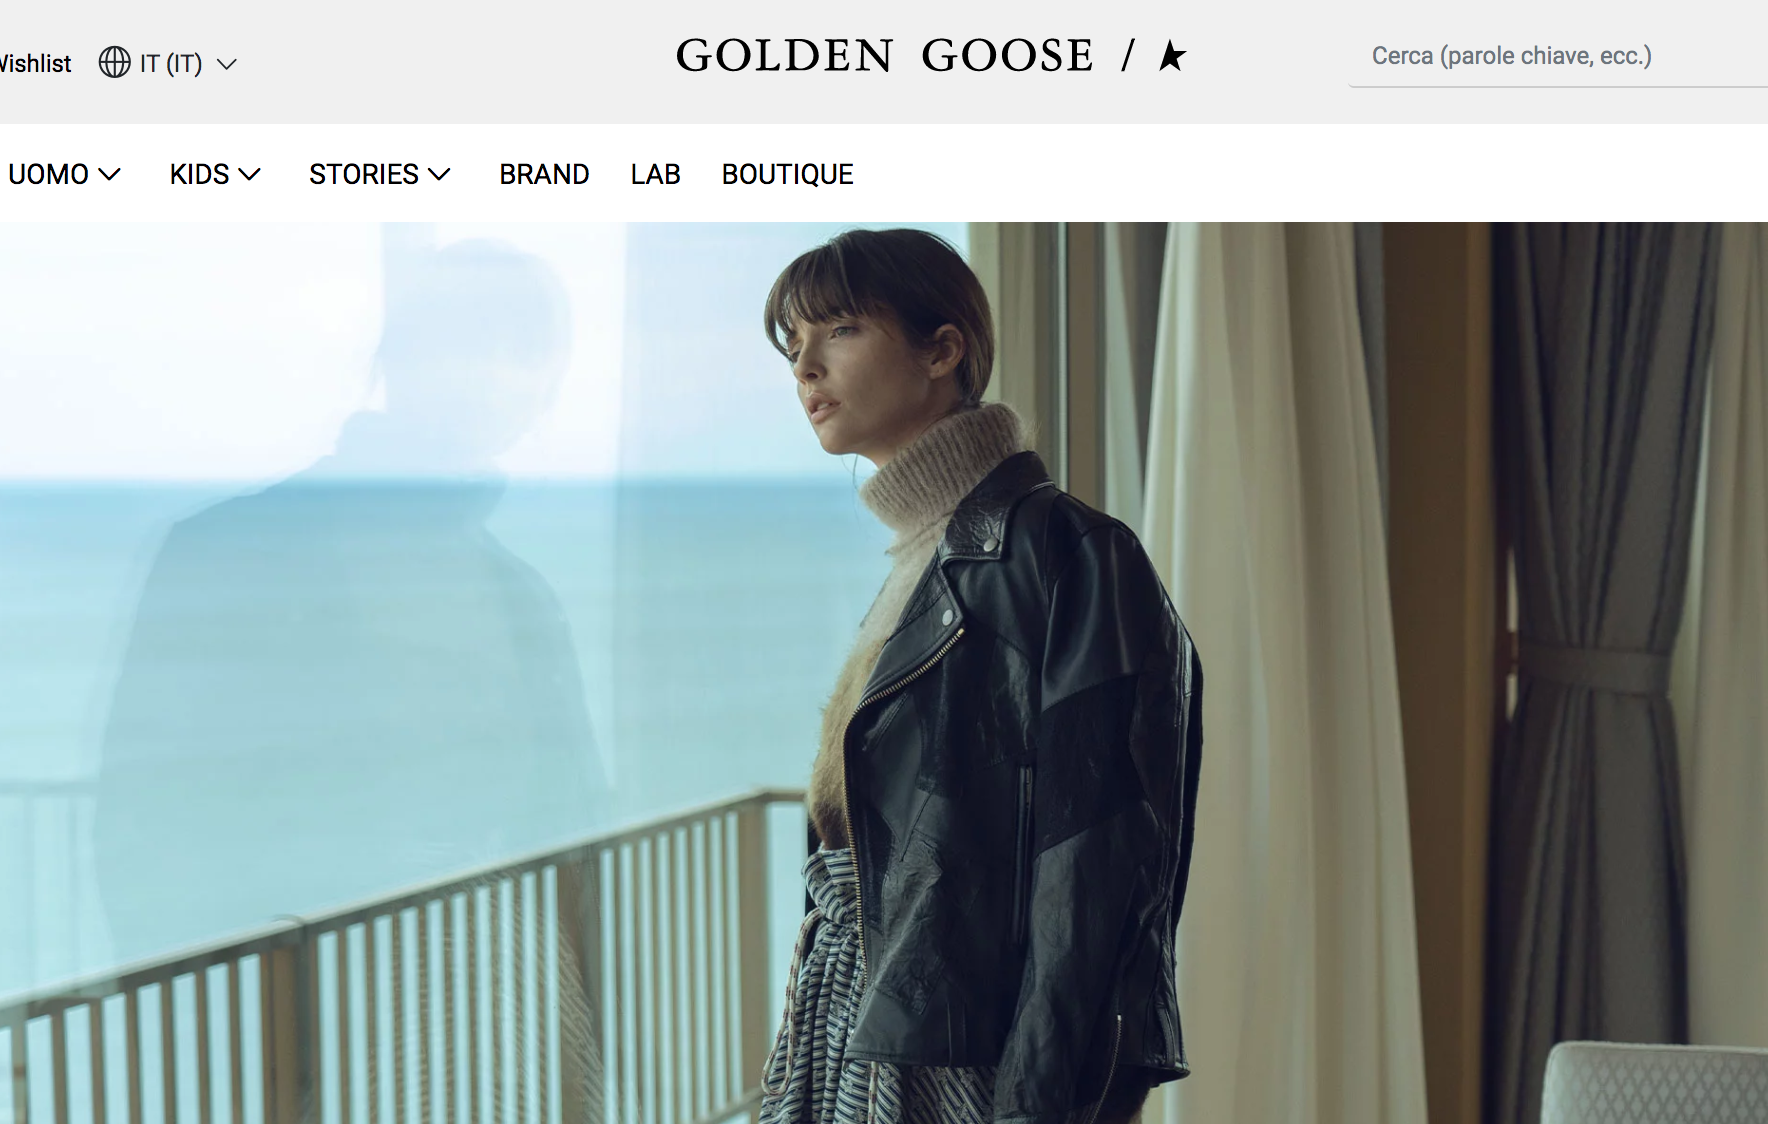 传:Gucci 前创意总监 Frida Giannini 复出加盟意大利潮鞋品牌 Golden Goose